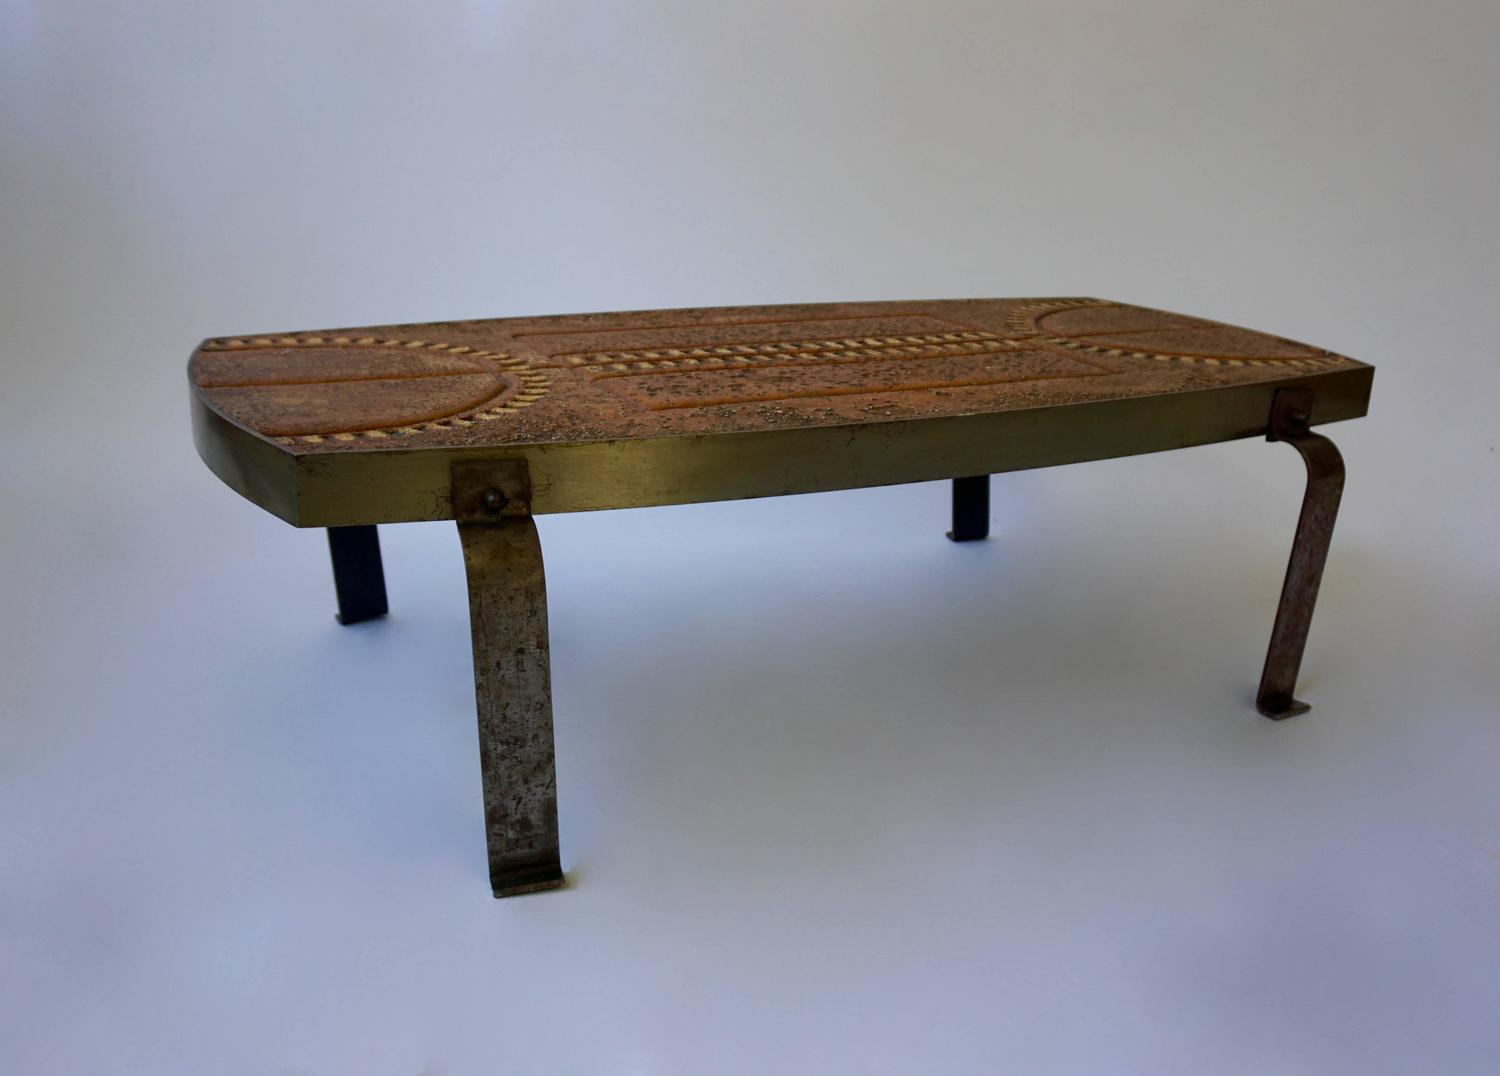 1950s iron and stone coffee table for sale at 1stdibs for Stone and iron coffee table